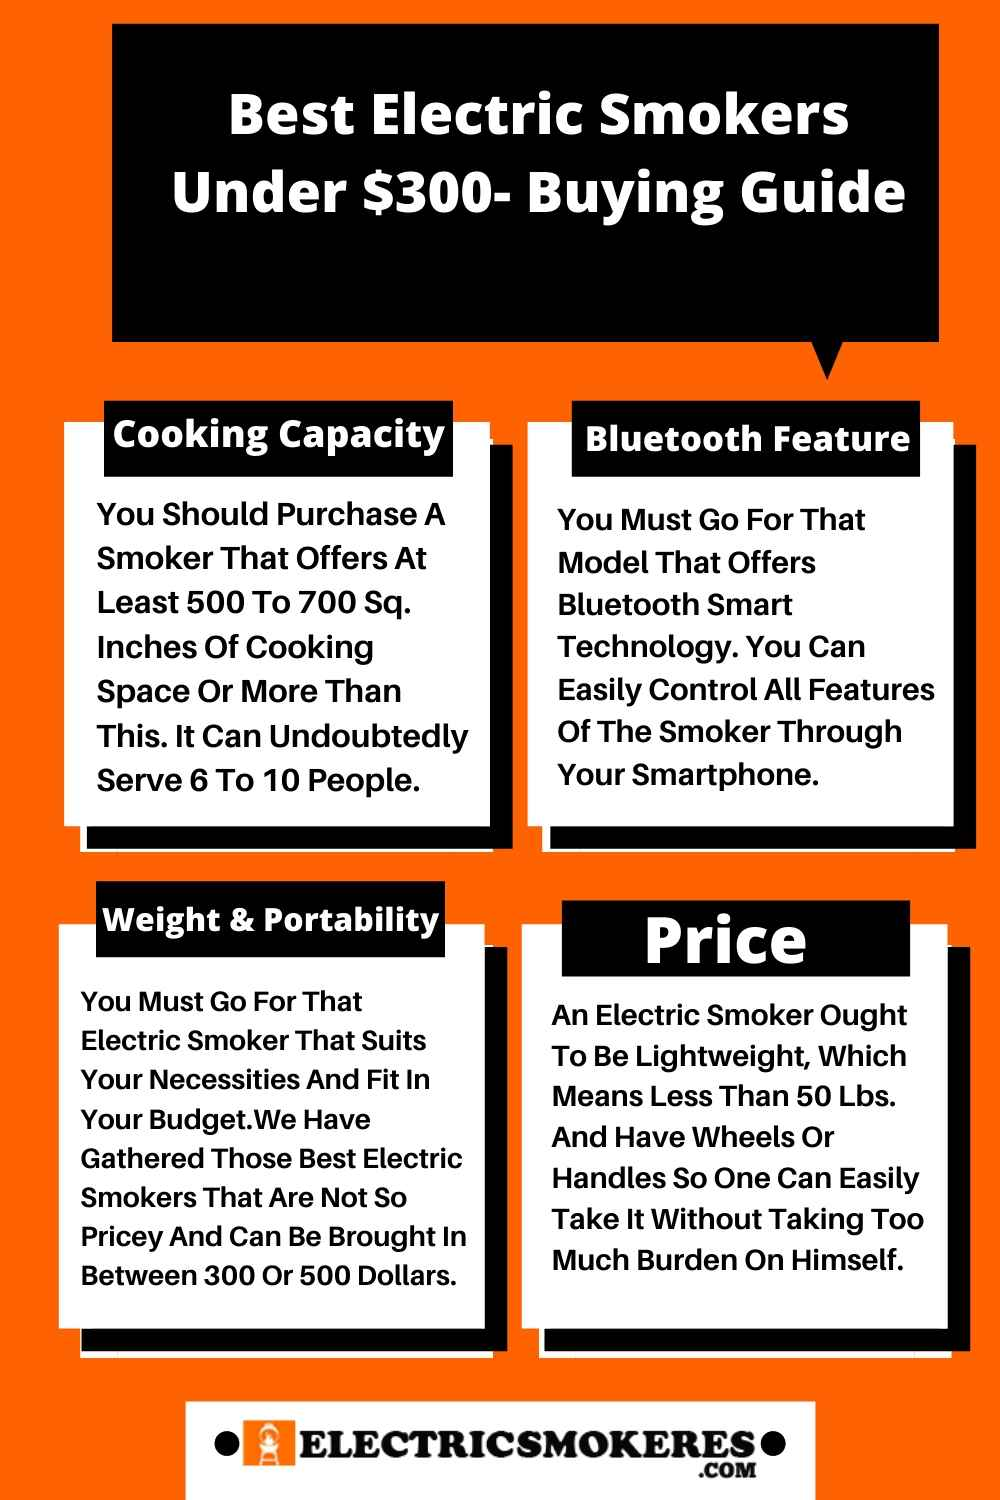 Best Electric Smokers under $300- Buying Guide